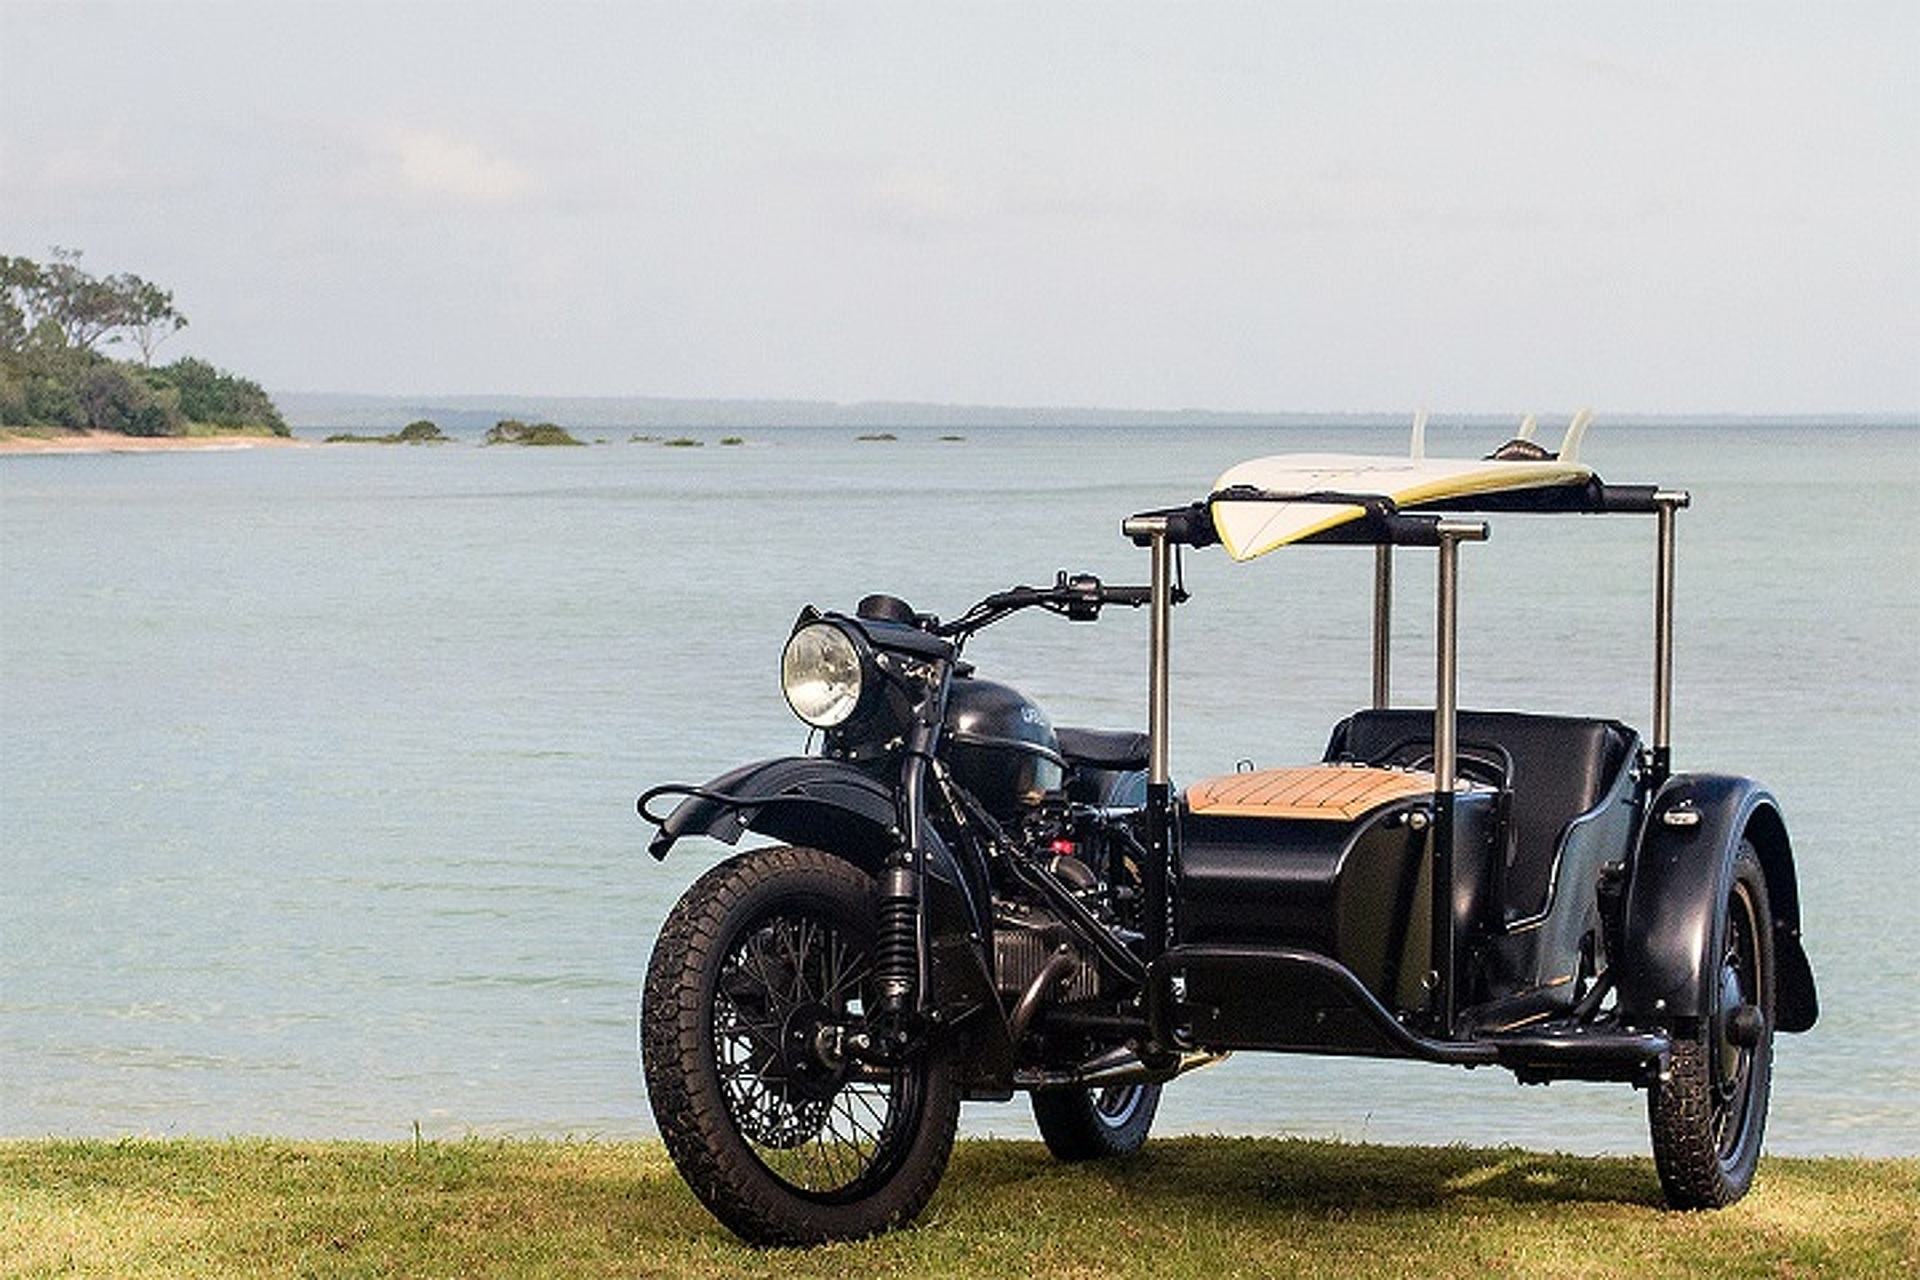 An Aircraft Designer Built This Sweet Sidecar for His Dog